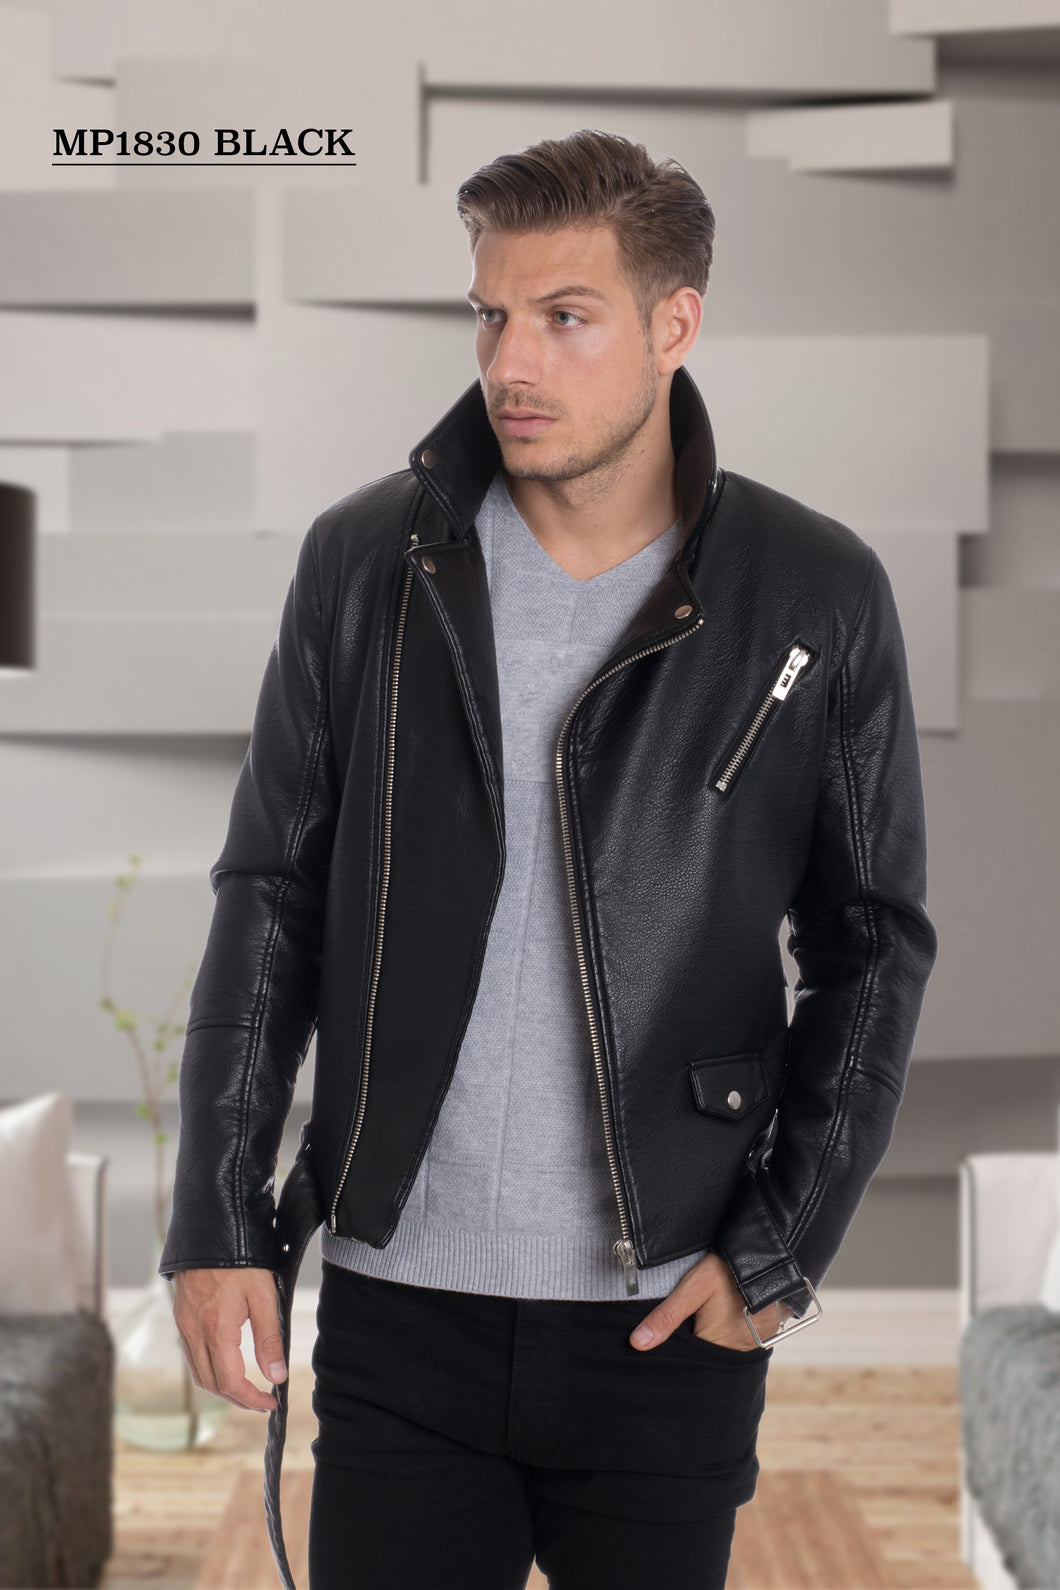 De-Niko Black Faux Leather Zip Up Accent Motorcycle Jacket STYLE:MP-1830